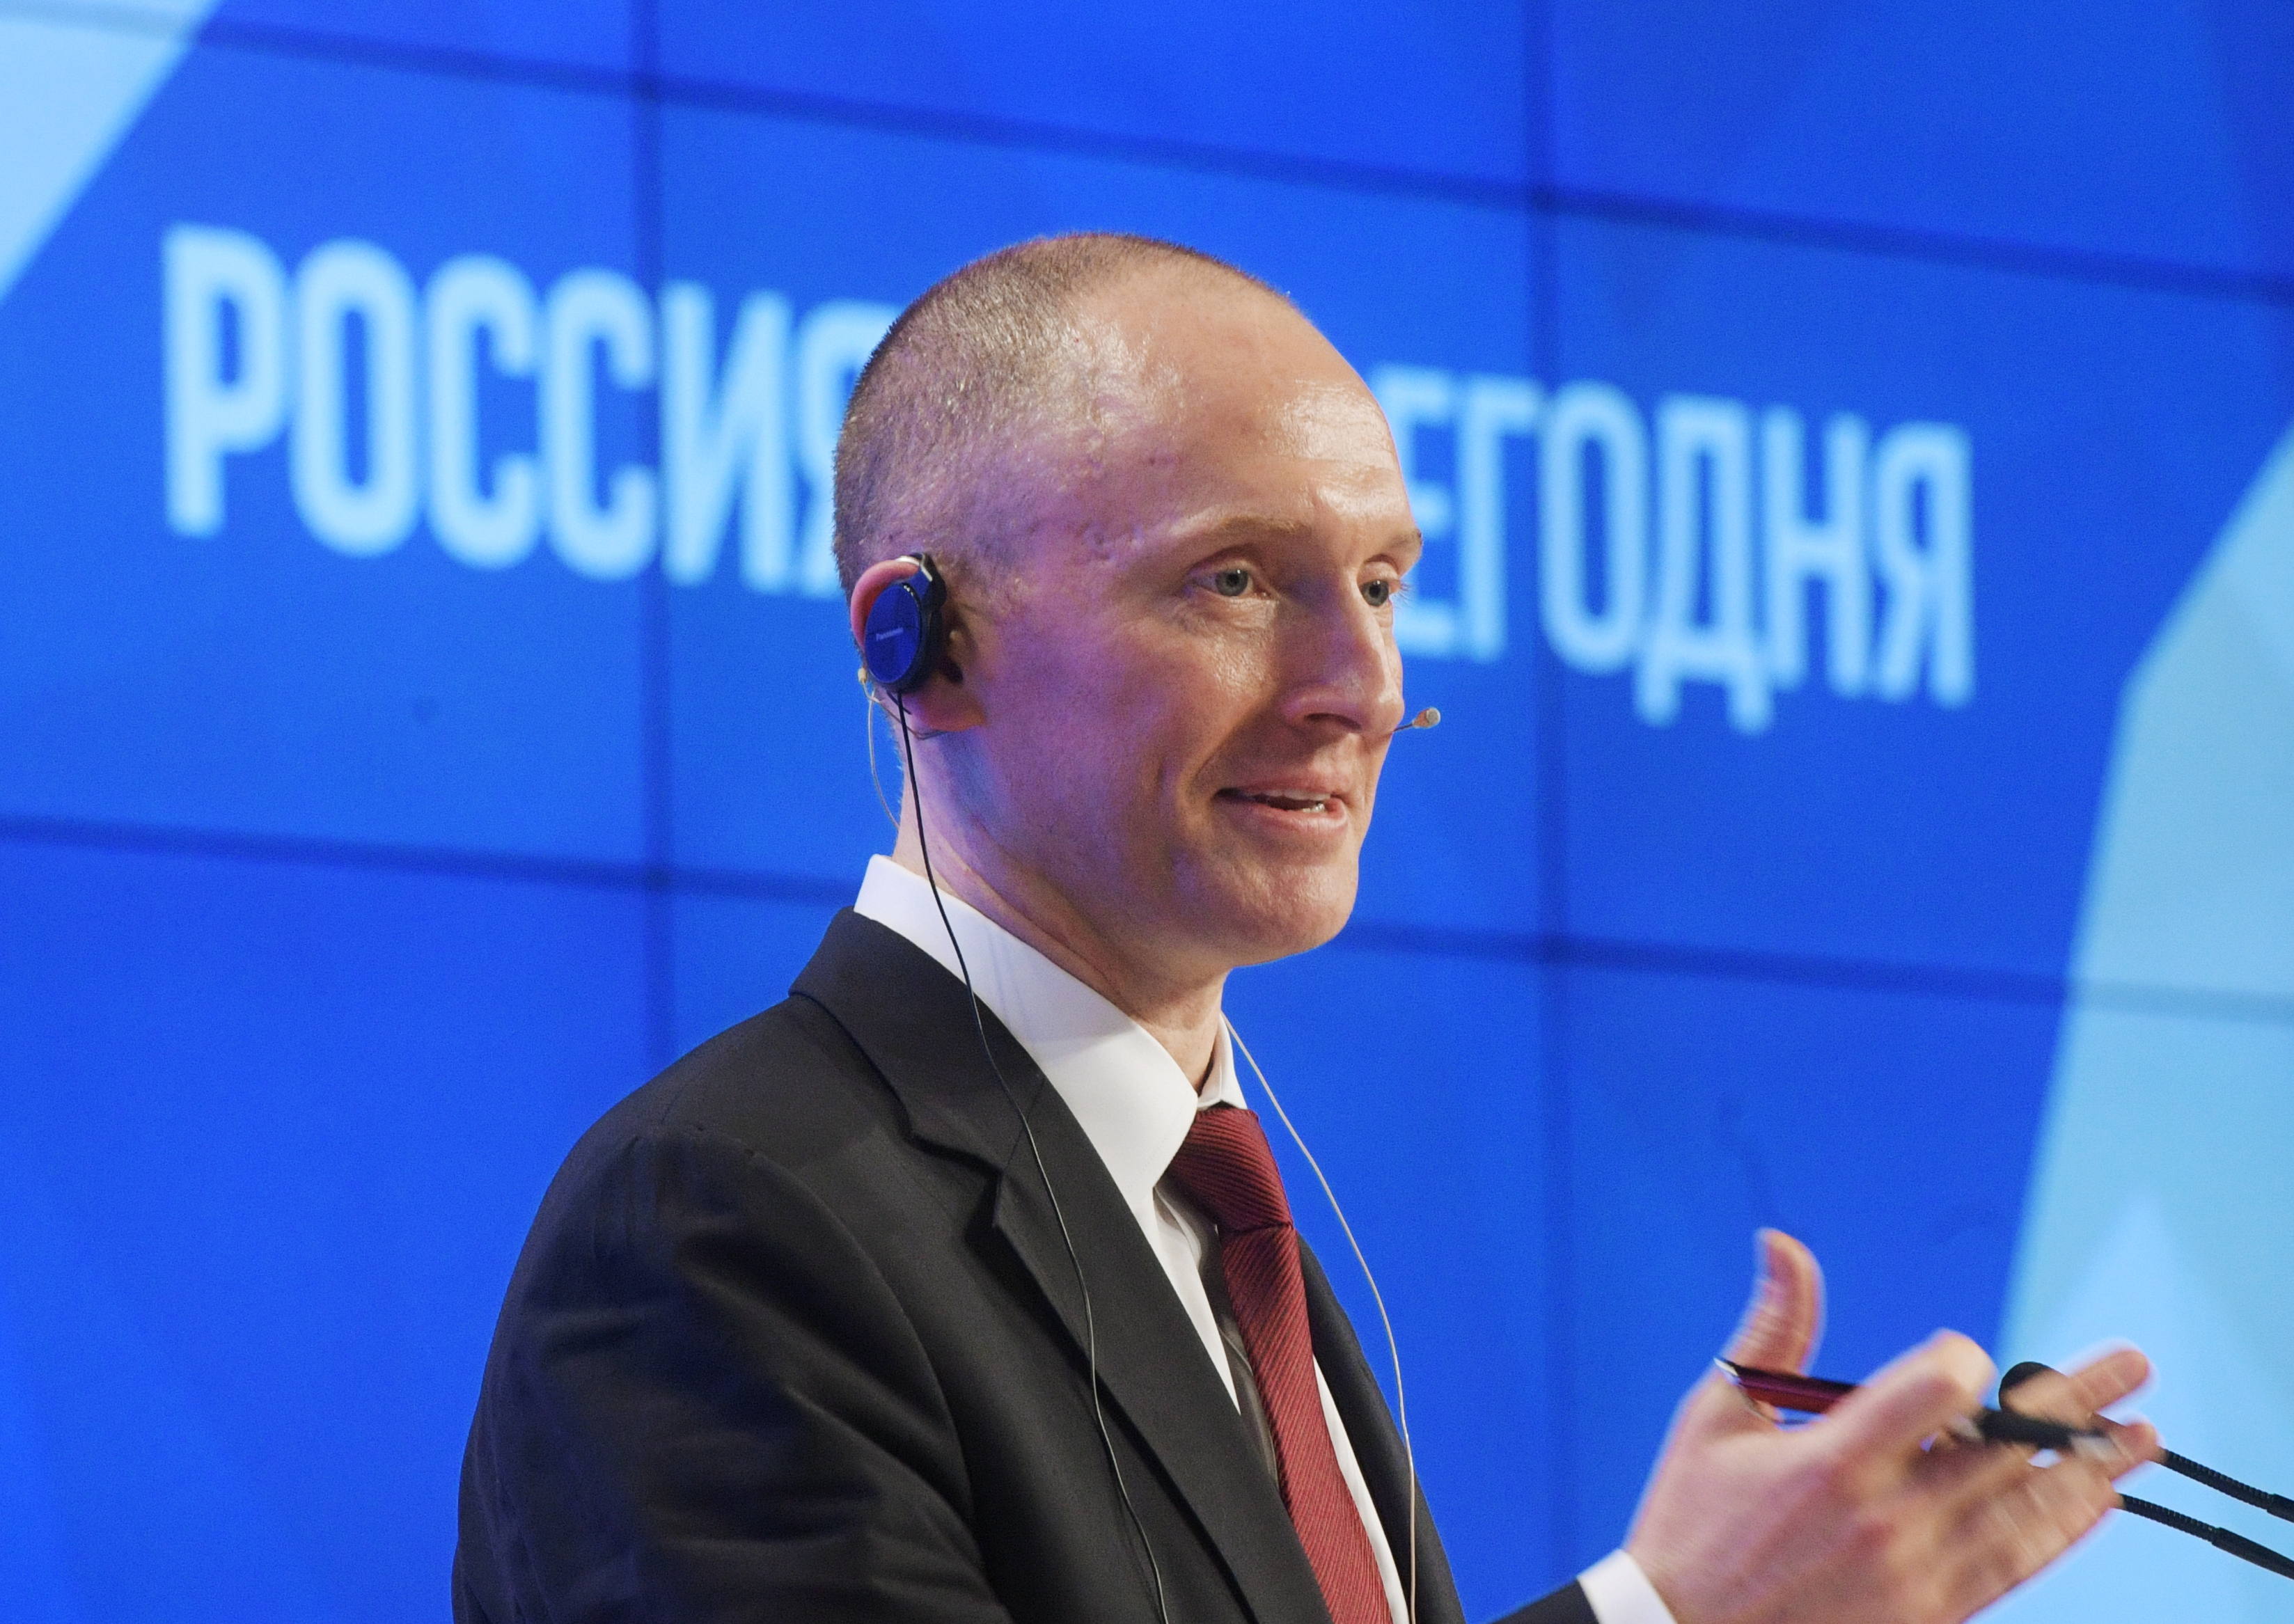 CNN: Russia Tried To Infiltrate Trump Camp Through Advisers Like Carter Page